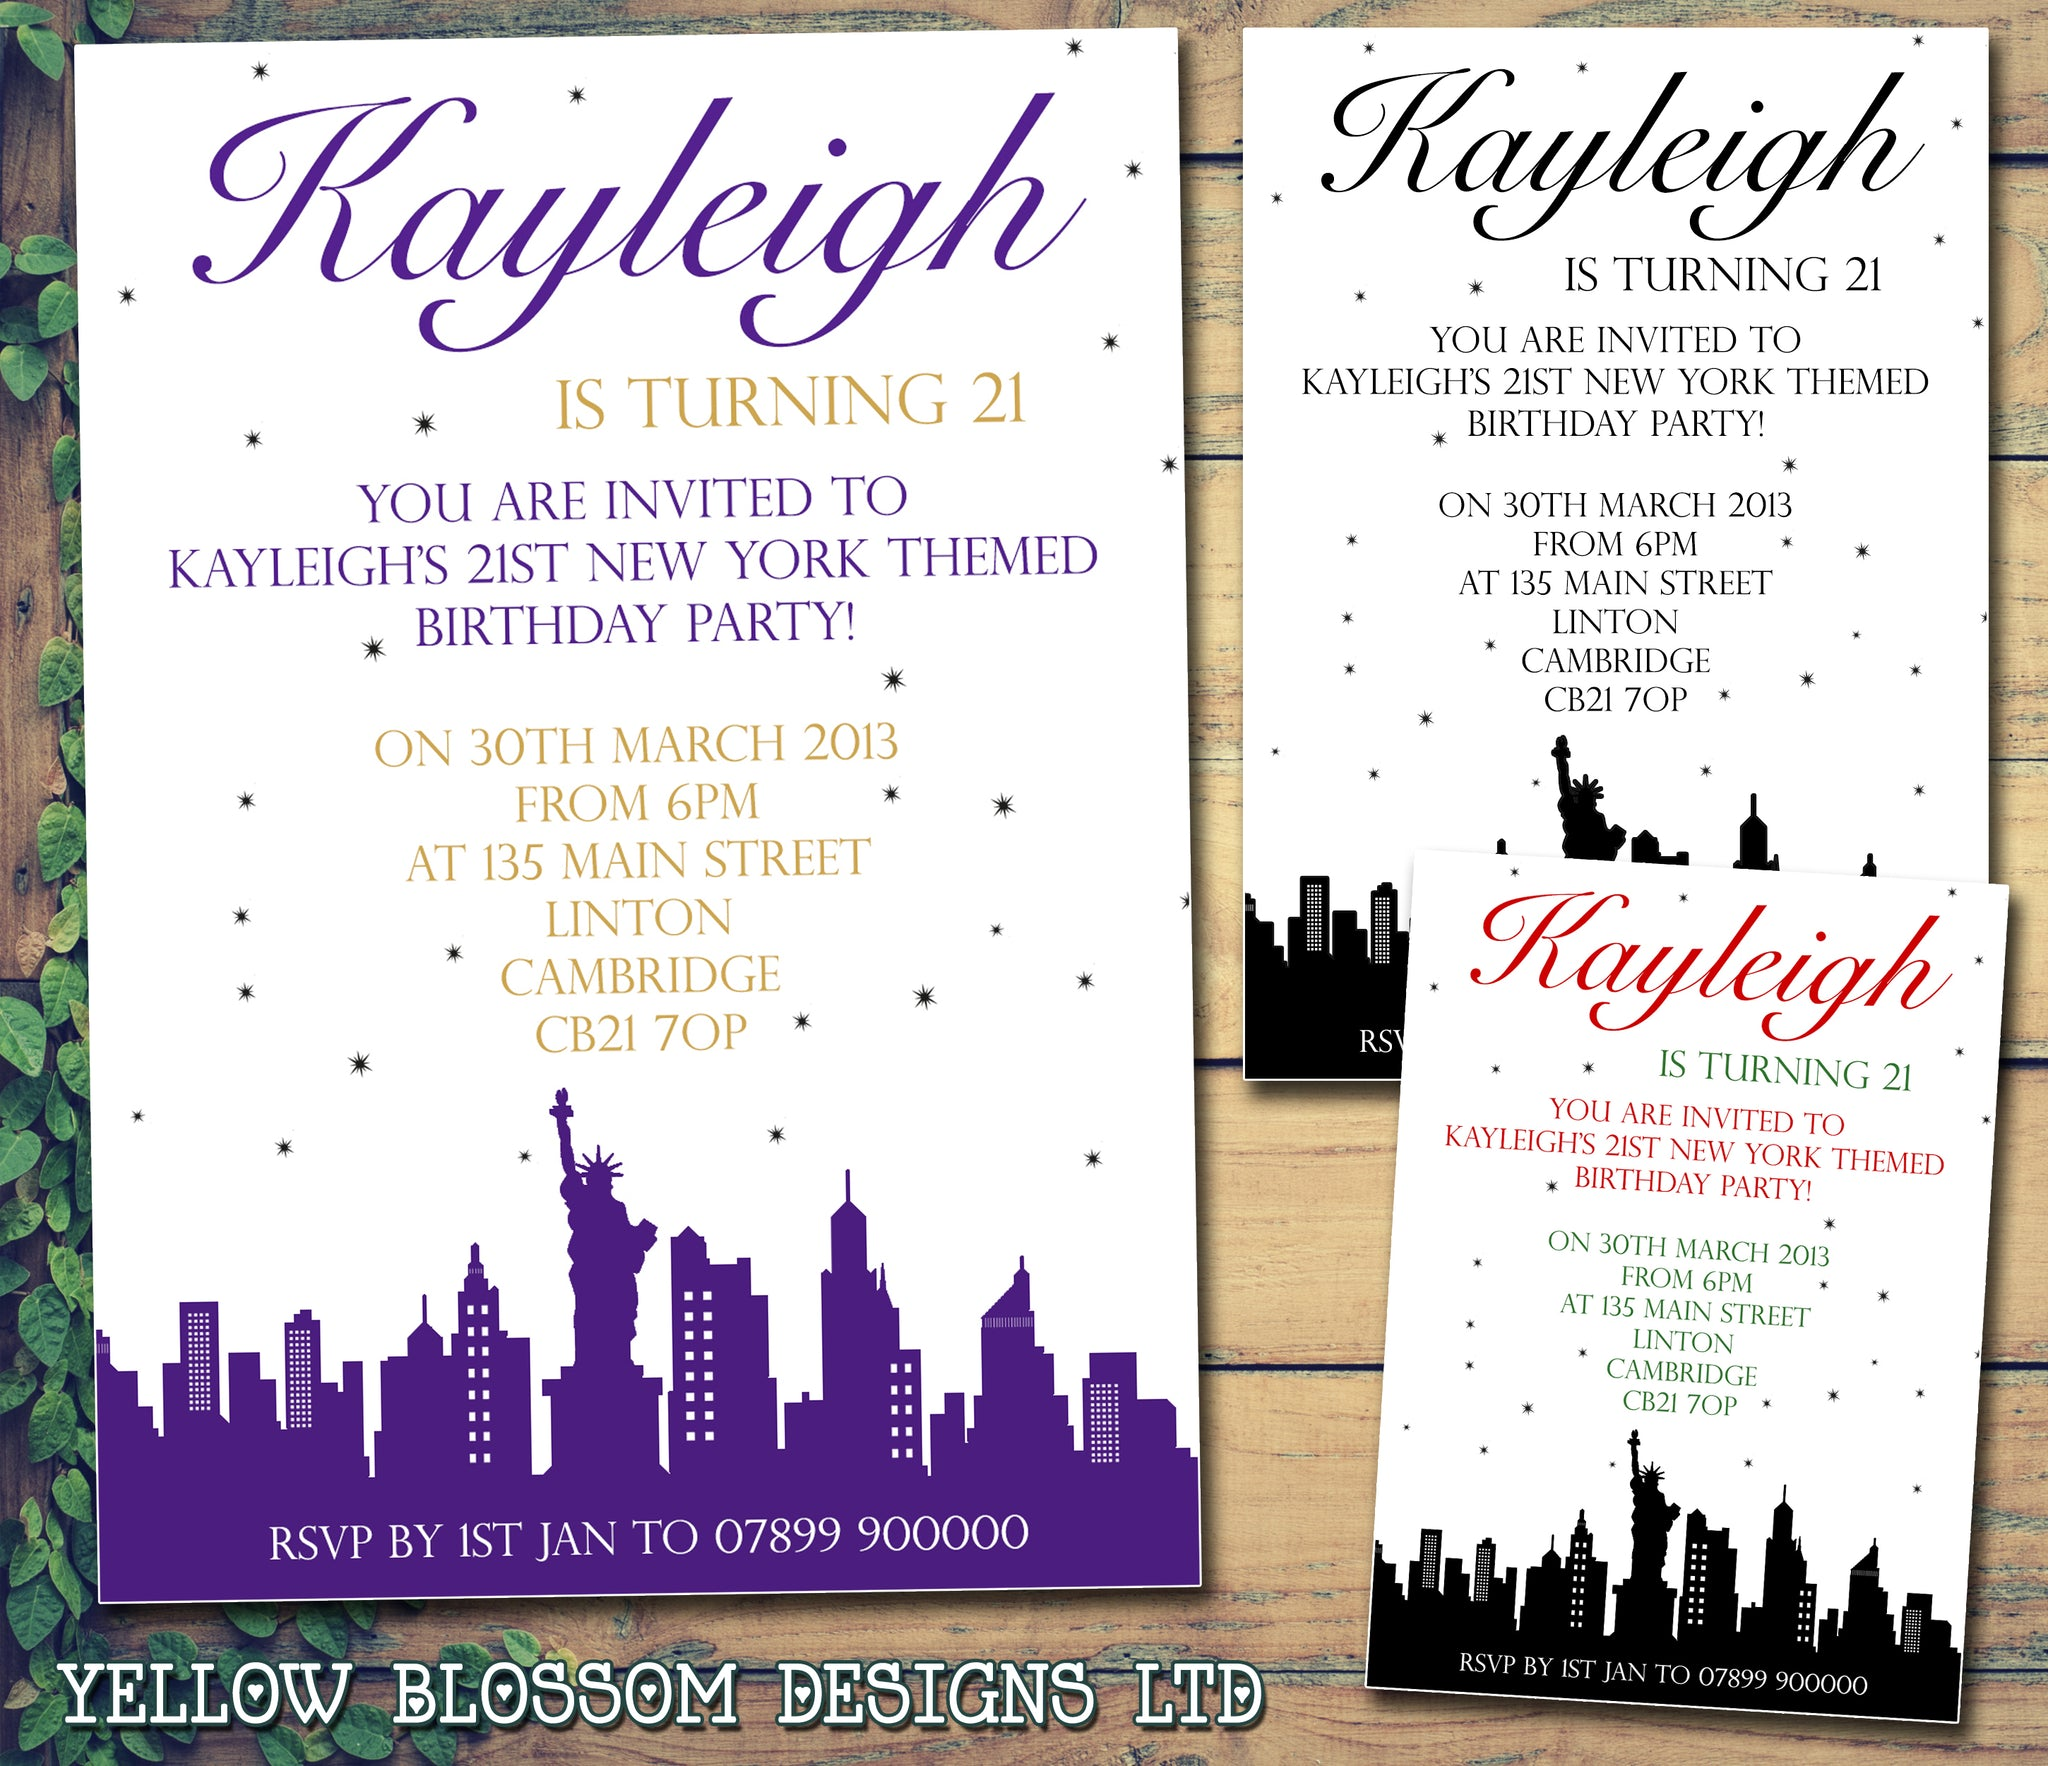 Personalised Birthday Invitations Female Male Unisex Joint 18th 21st